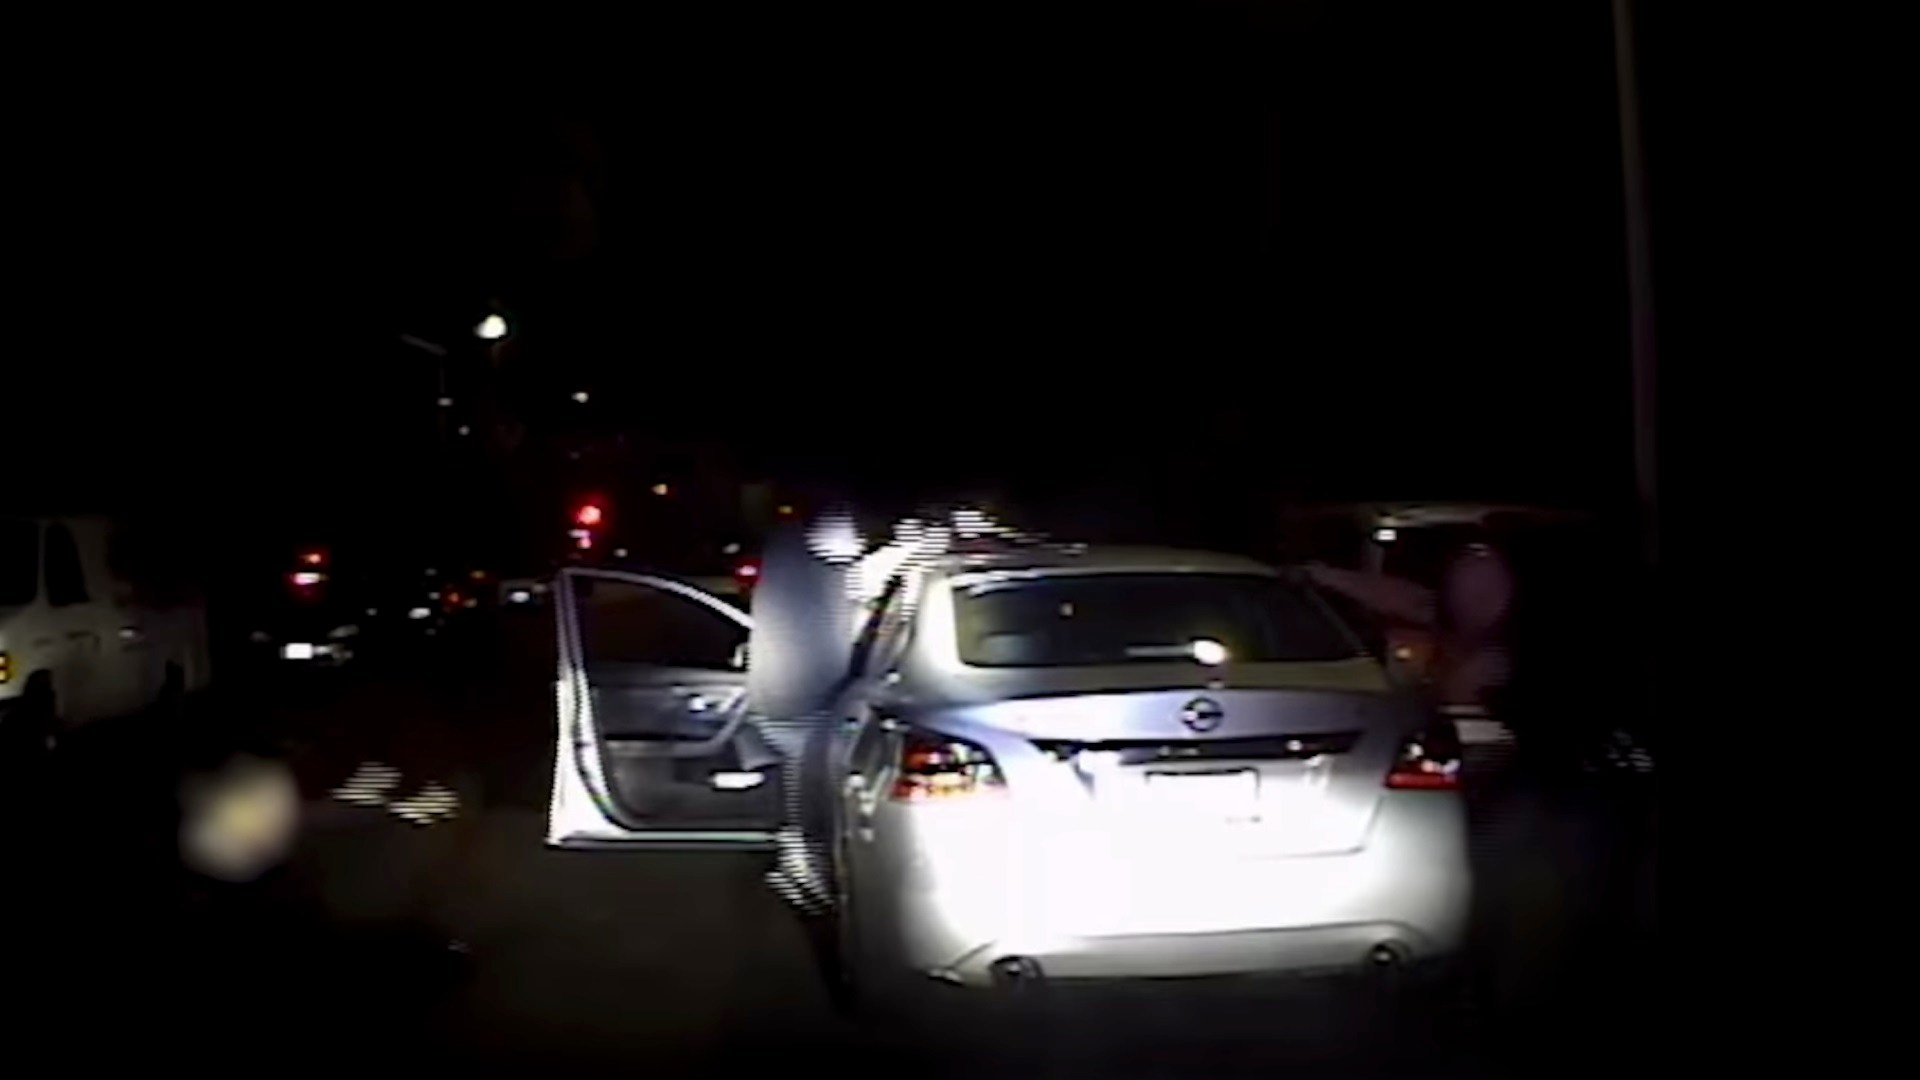 LAPD video shows suspect shooting officer in routine traffic stop